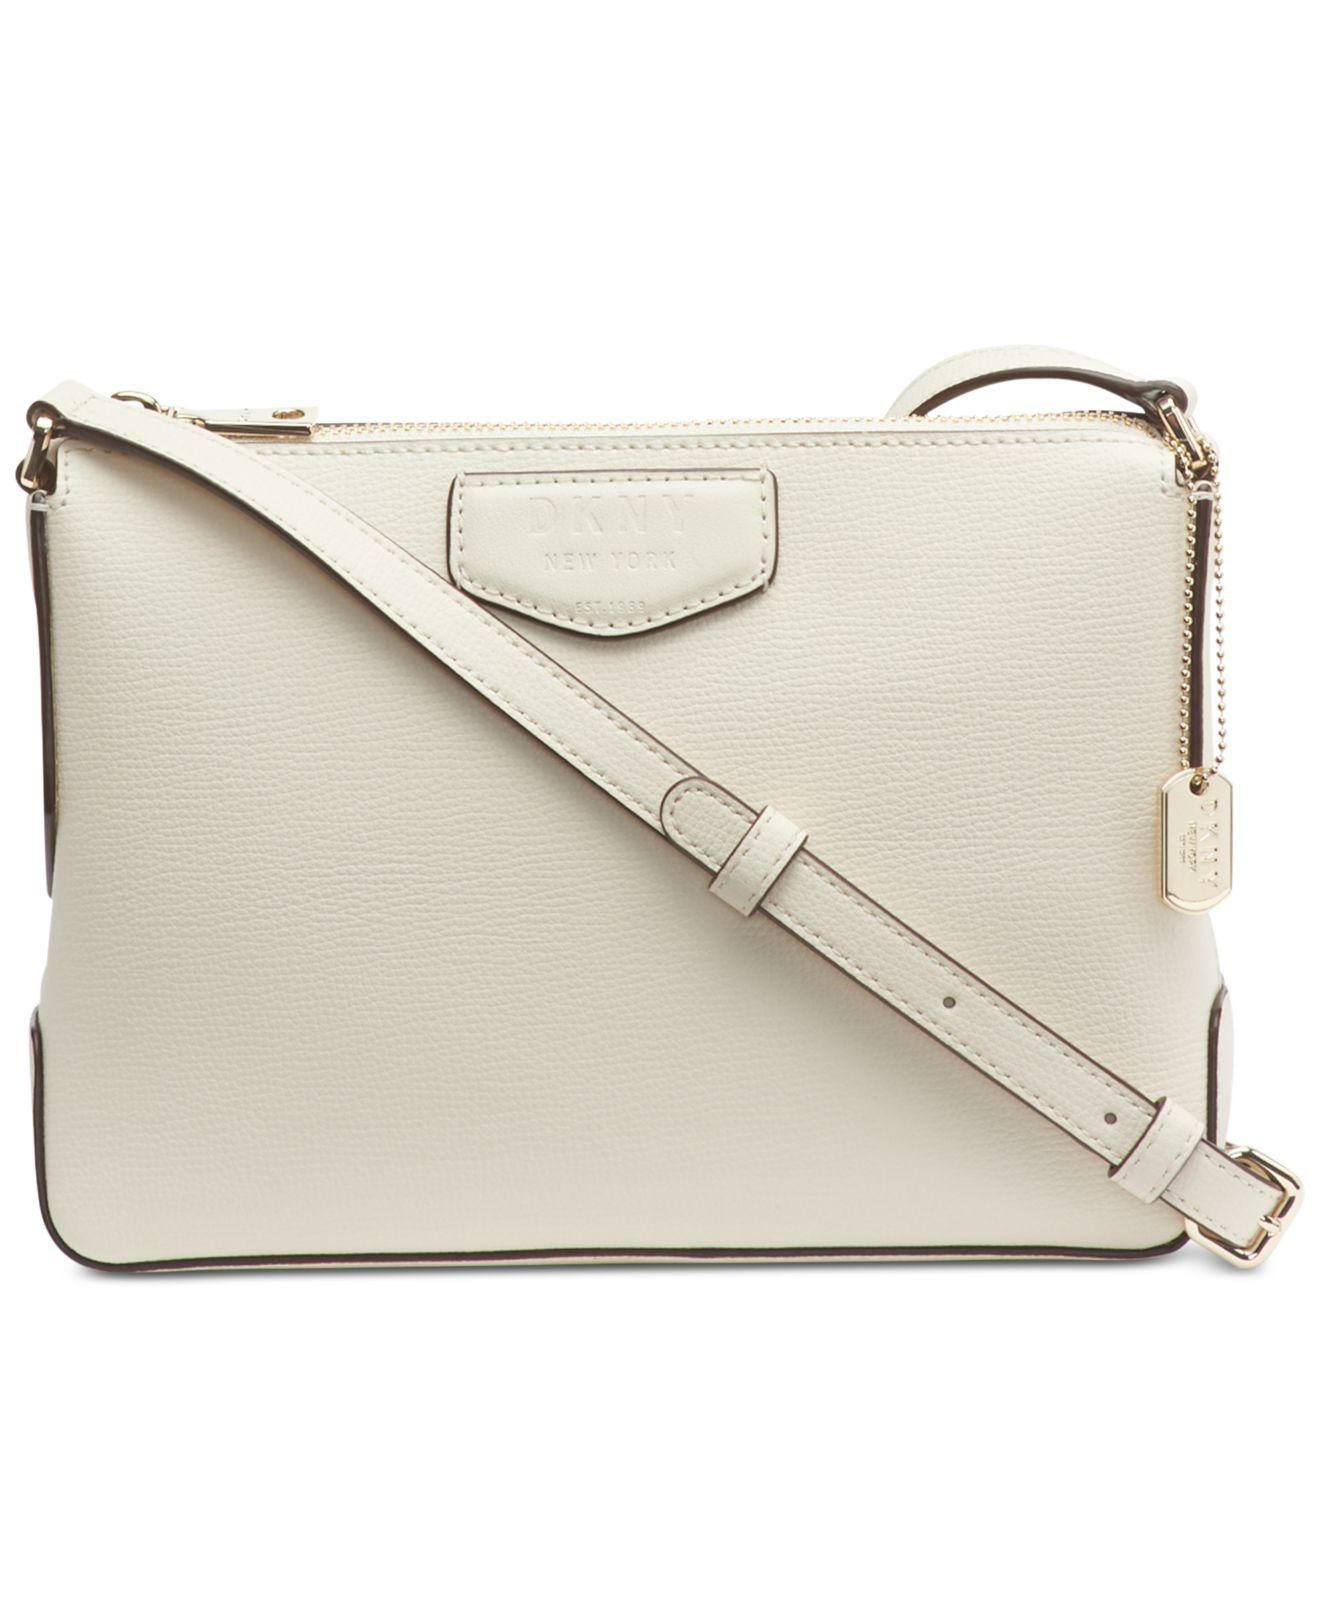 dcf4464748 Lyst - DKNY Sullivan Leather Top-zip Crossbody